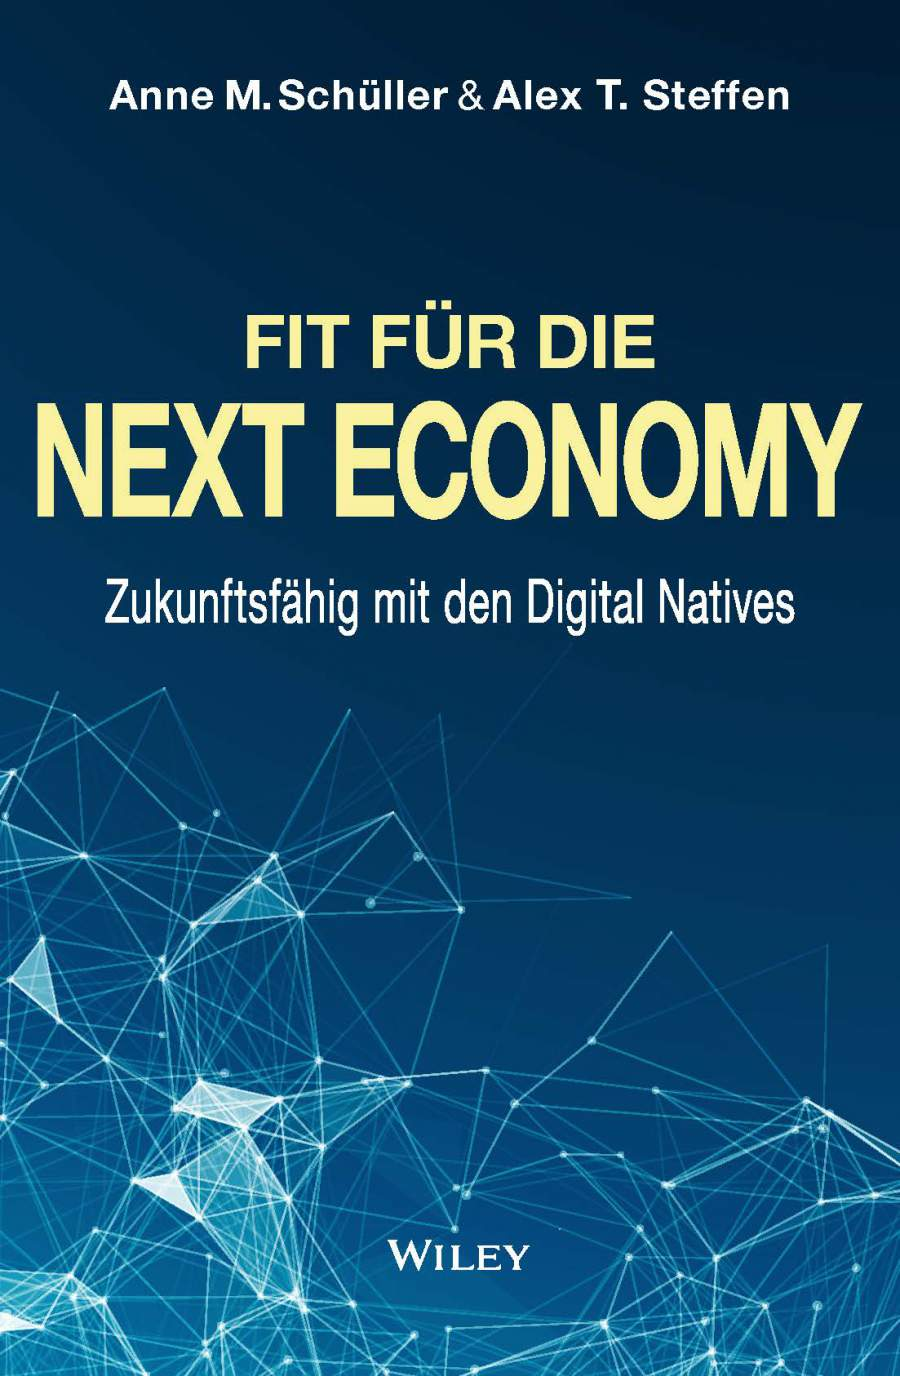 Für für die Next Economy, Zukunftsfähig mit den Digital Natives, Digital Natives, Millennials, Generation Y, Anne M Schüller, Alex T. Steffen, Buchcover, Wiley, Touchpoints montags